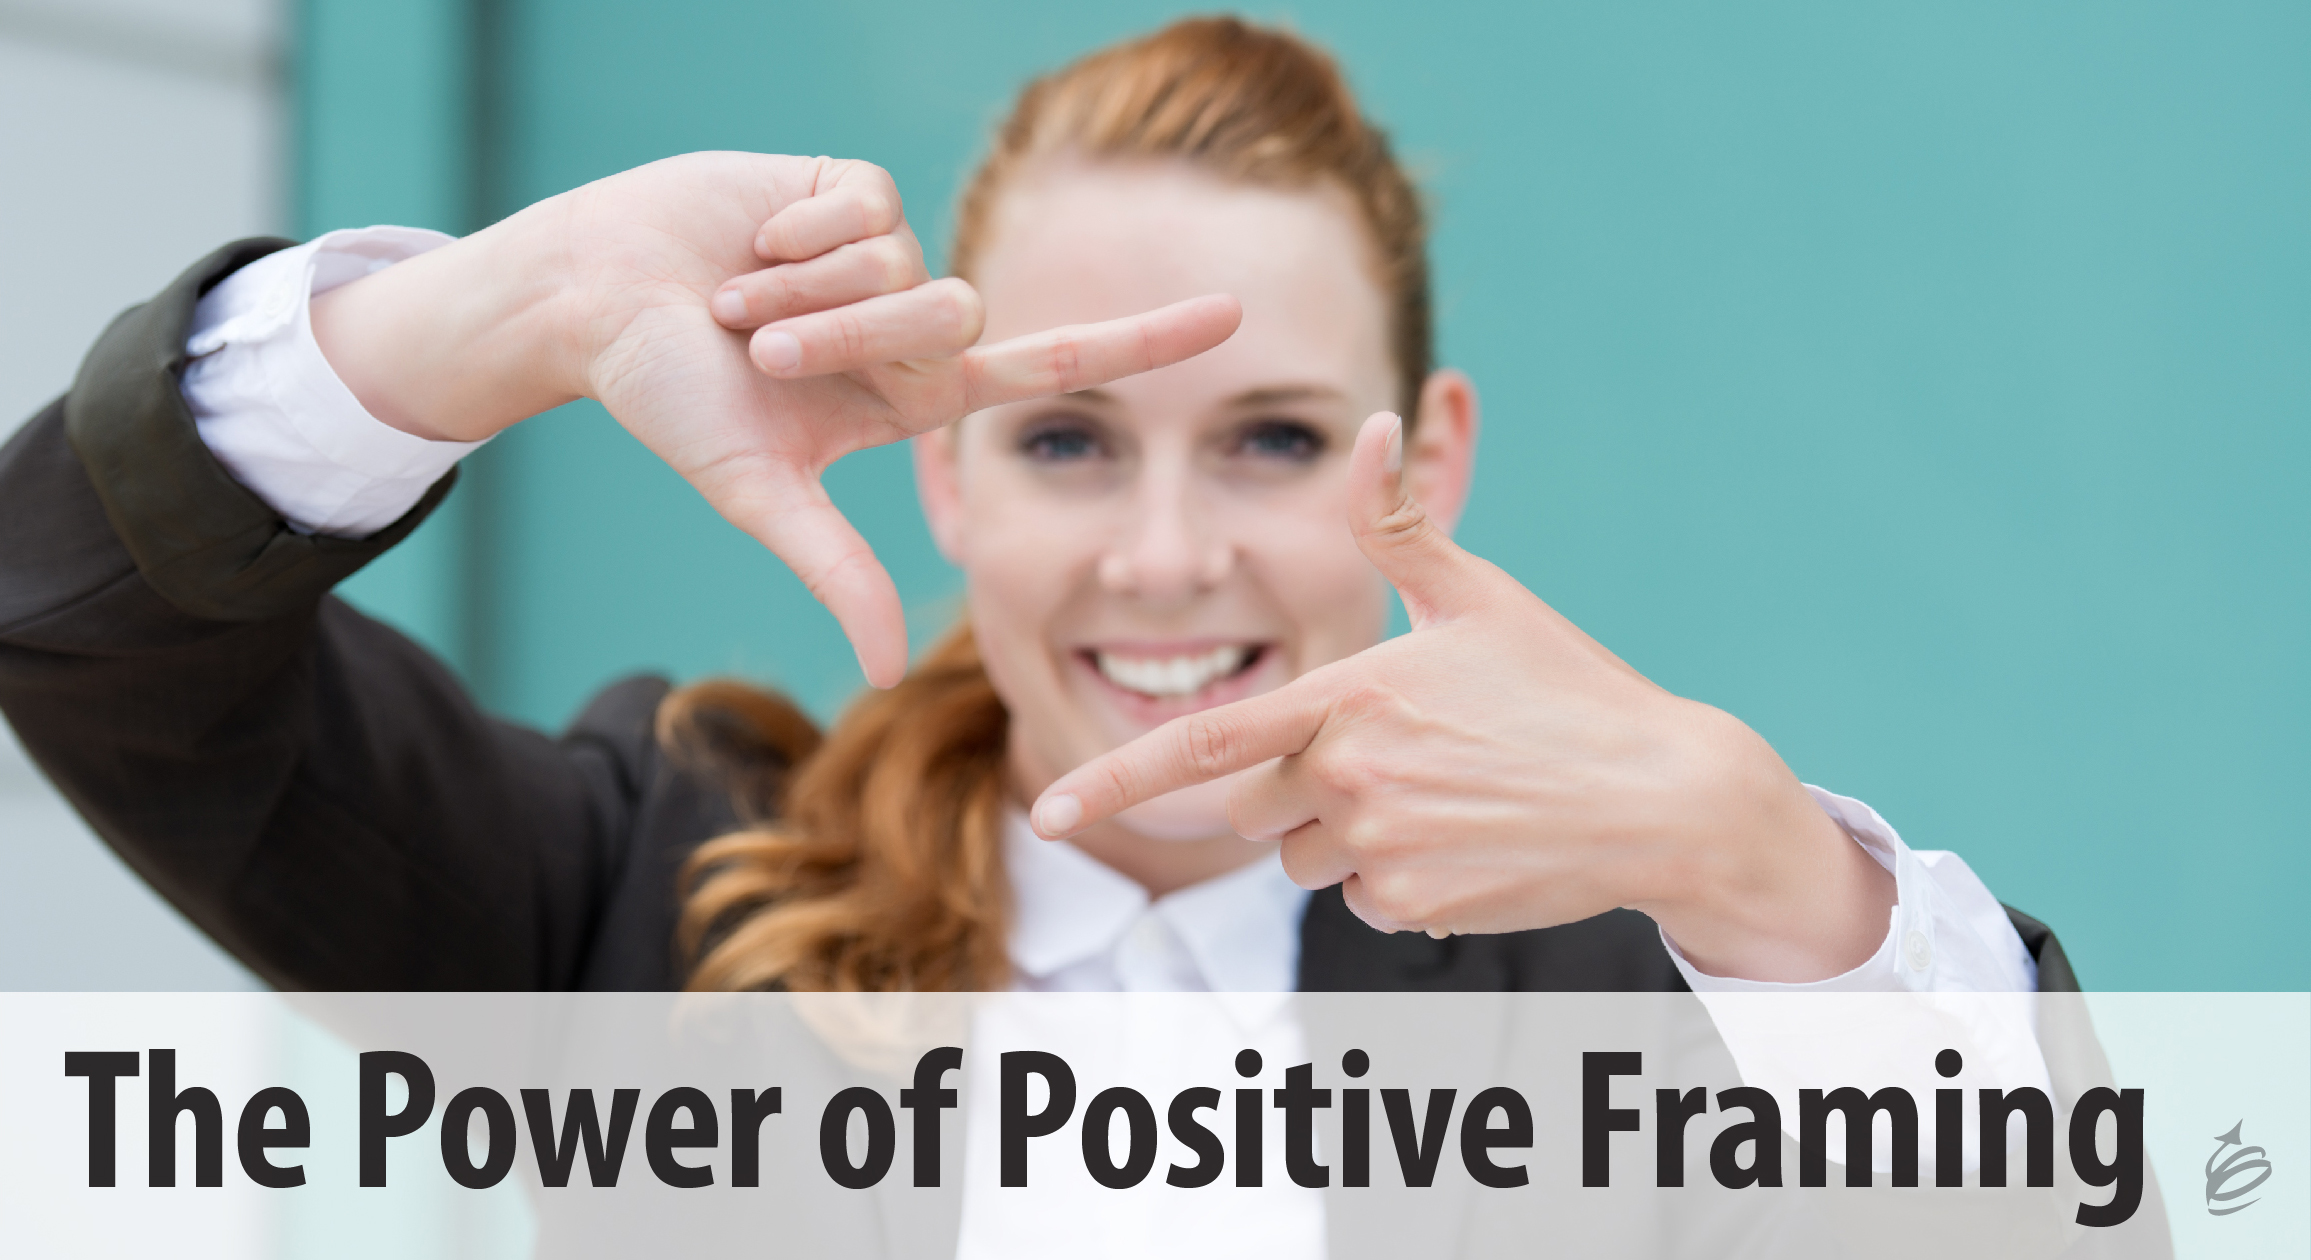 The Power of Positive Framing